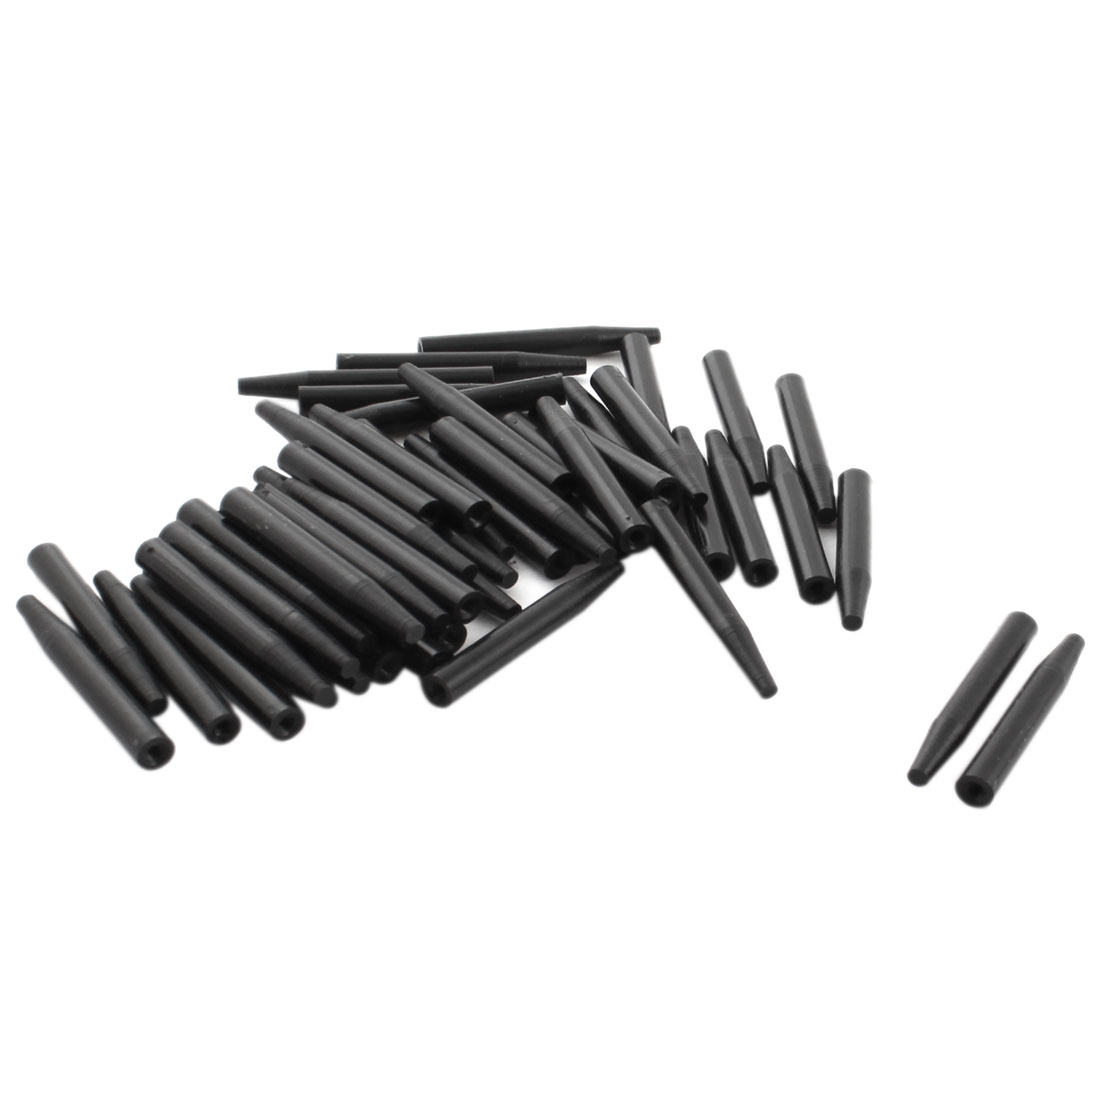 50Pcs 6x45mm PCB Test Fixture Hardware Parts Plate POM Stand Holder Fixed Rod Black